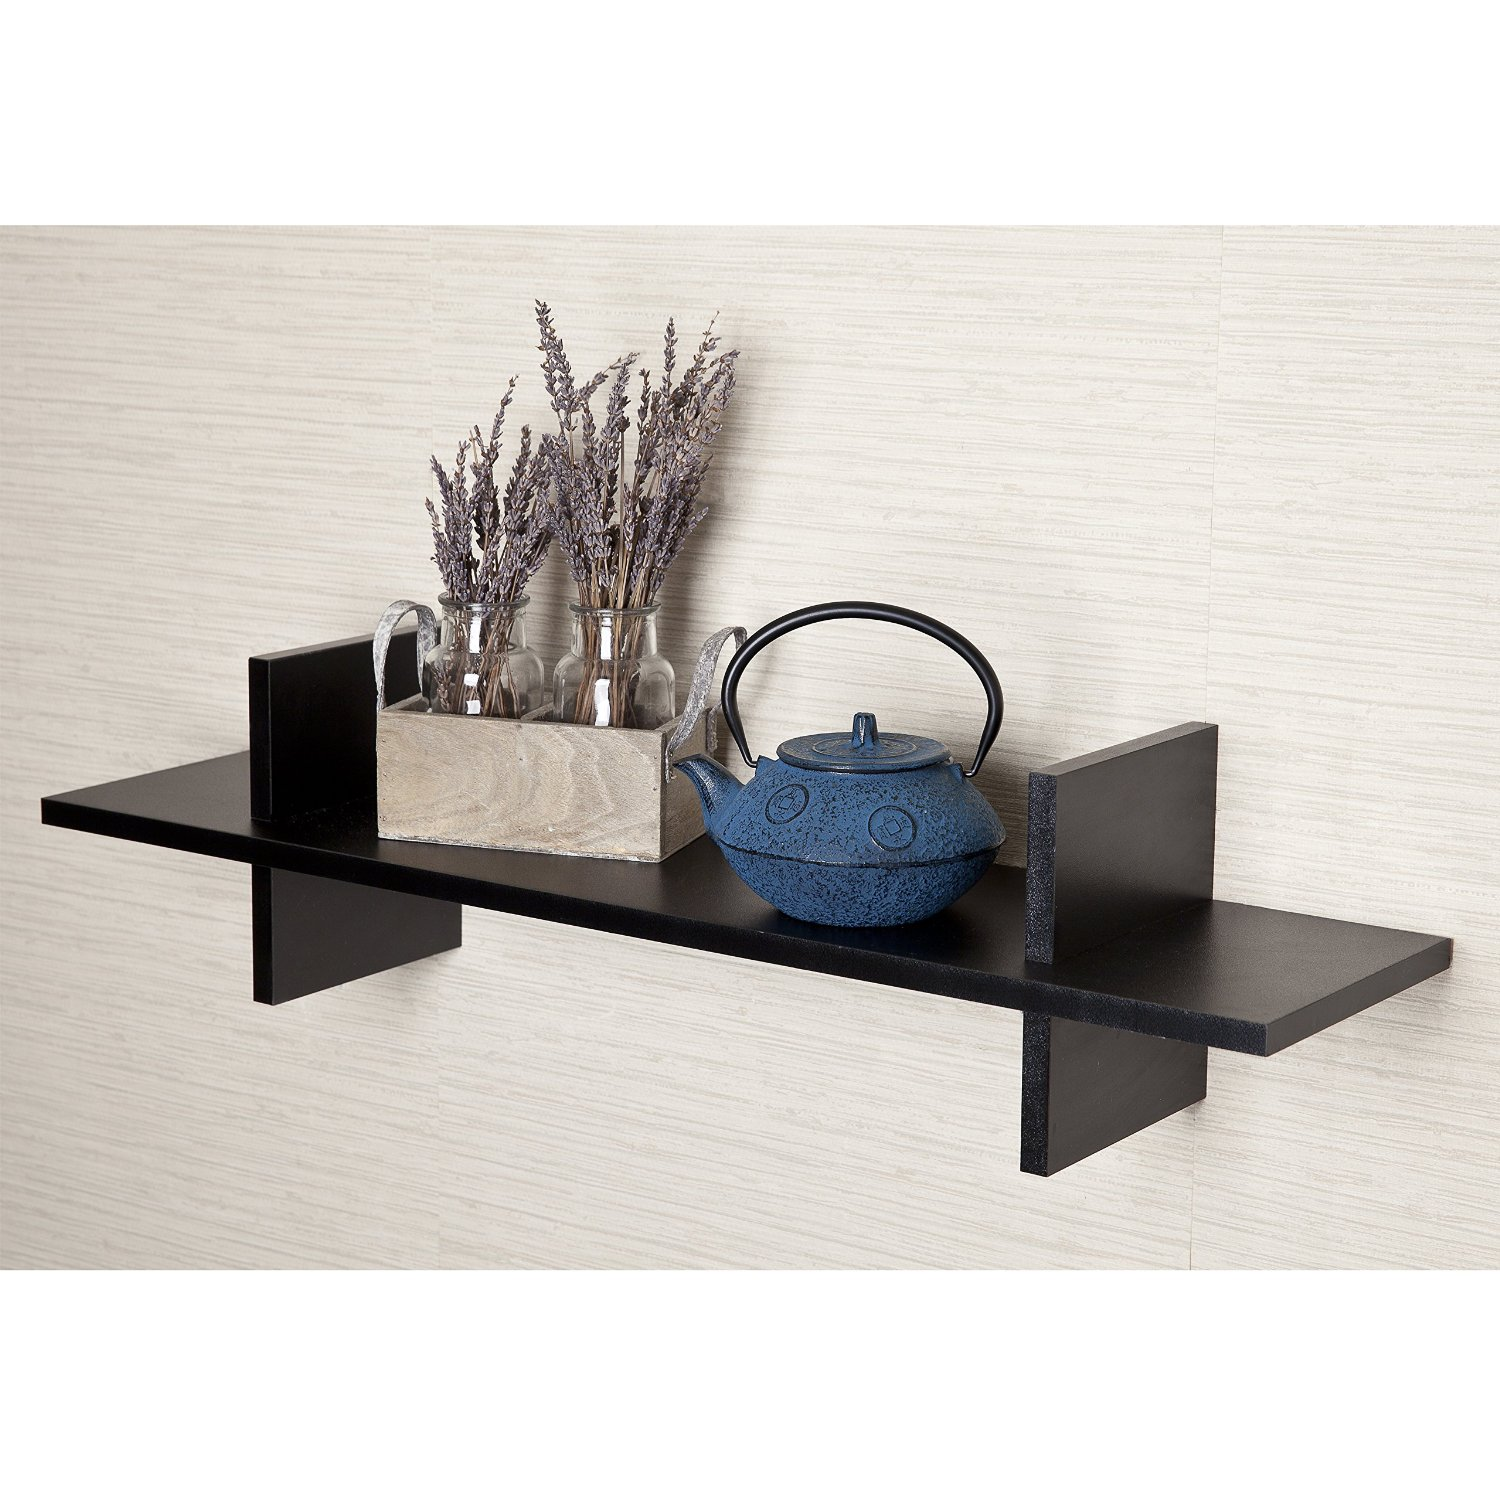 Top 16 black floating wall shelves of 2016 2017 review for Decoration shelf